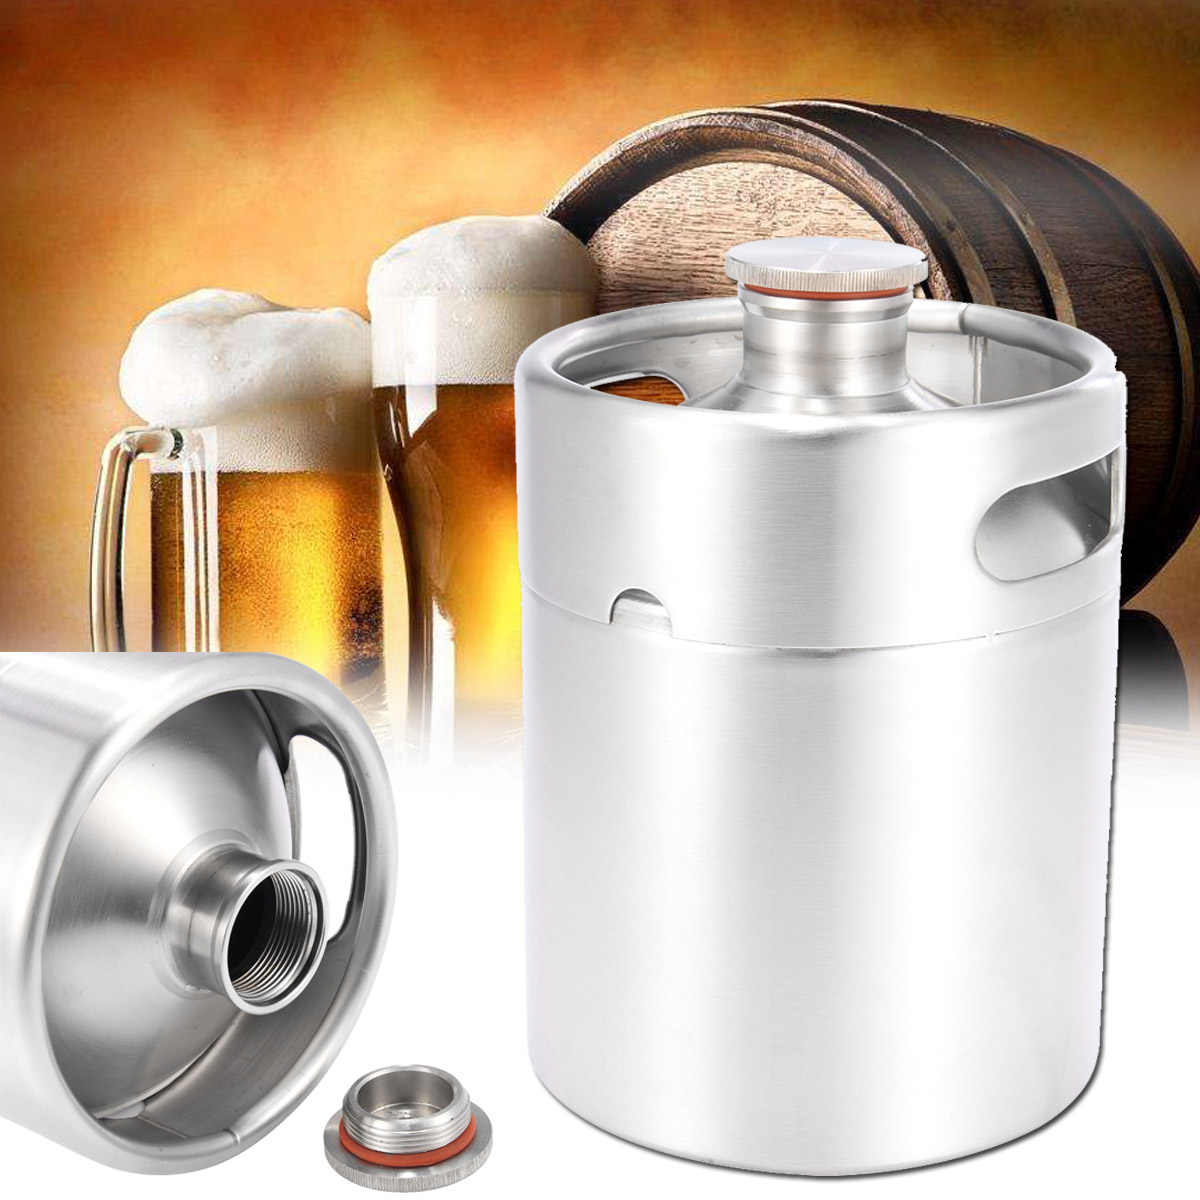 New 304 Stainless Steel 2L Mini Beer Keg Pressurized Growler Durable Portable Beer Bottle Home Brewing Beer Making Tool For Home